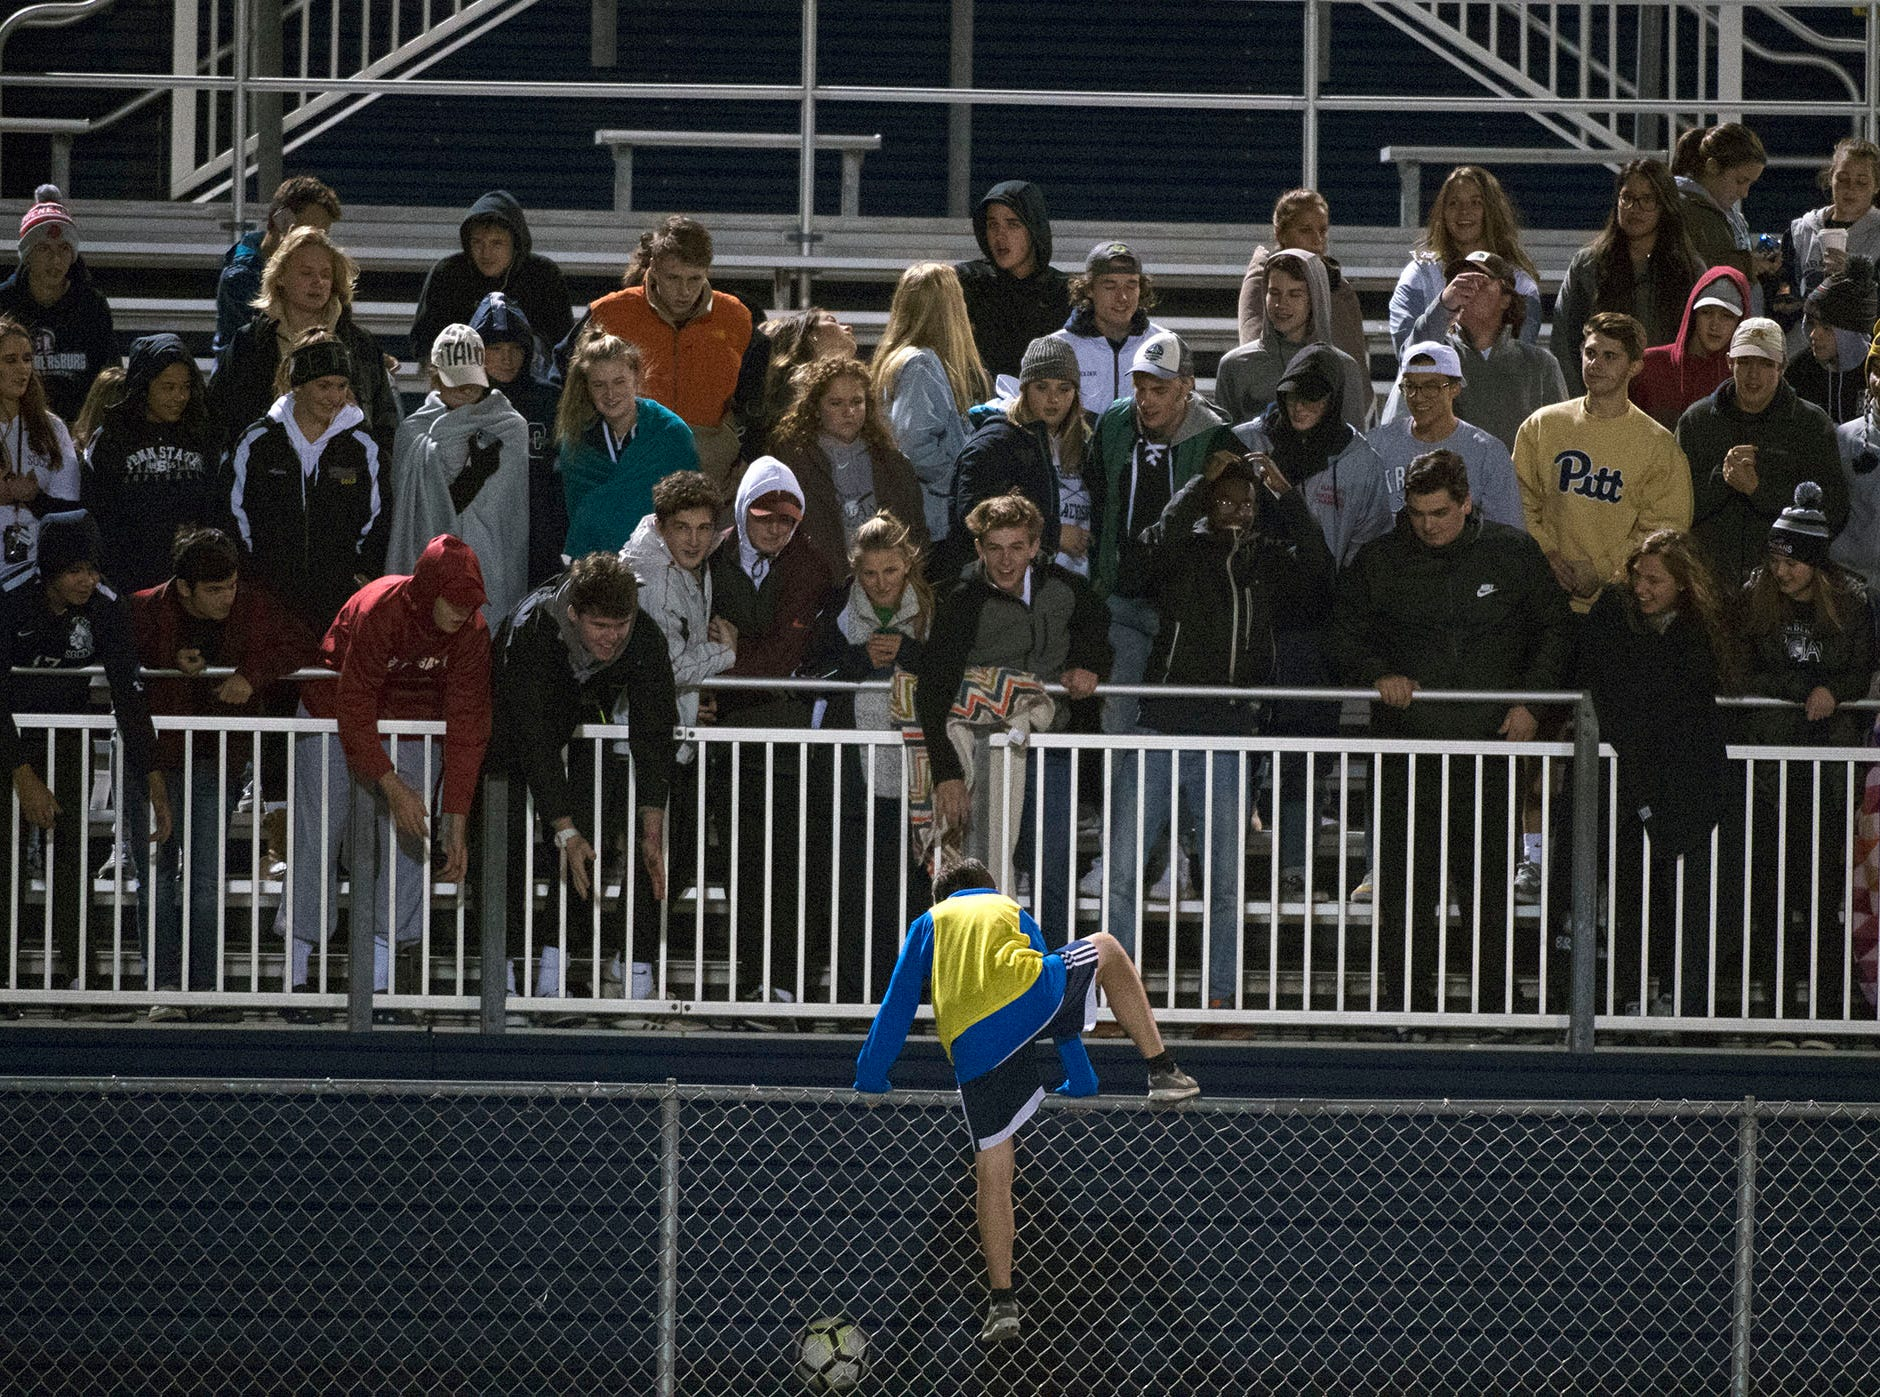 Chambersburg fans watch as a ball boy climbs the fence to chase a ball. Chambersburg lost a first round D3 soccer match to Dallastown 2-1 on Tuesday, Oct. 23, 2018.